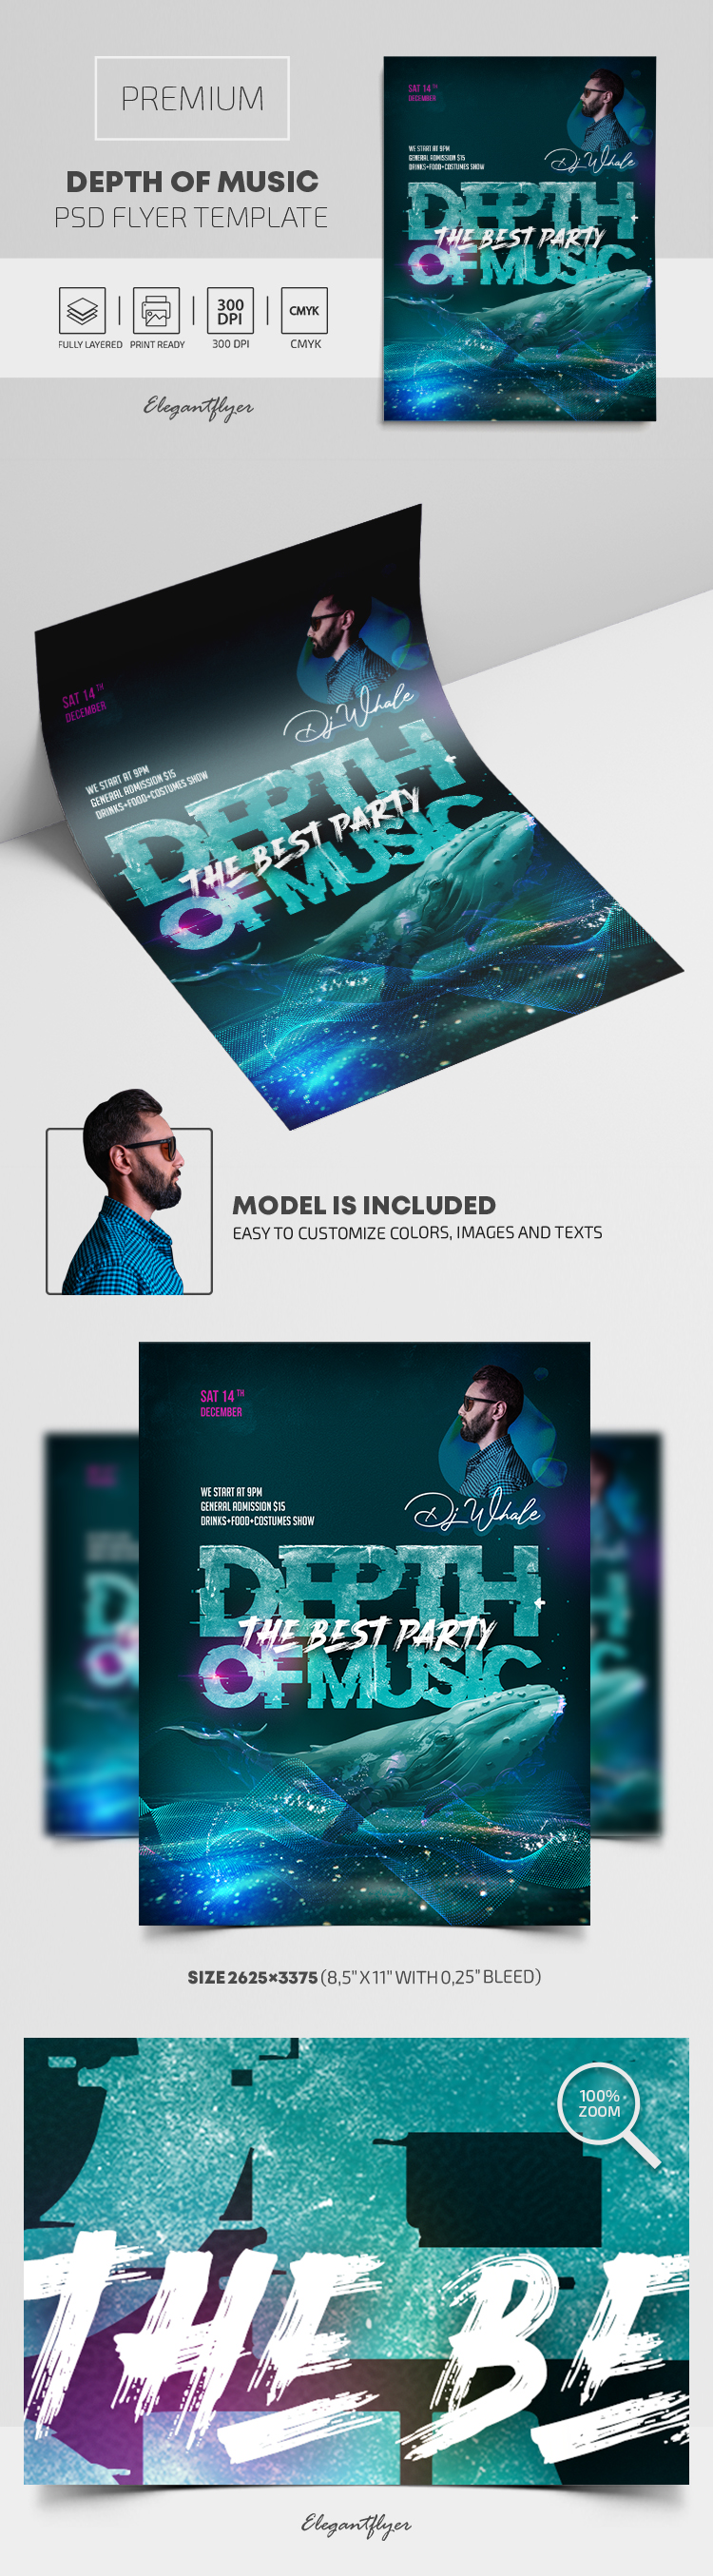 Depth of Music Party – Premium PSD Flyer Template